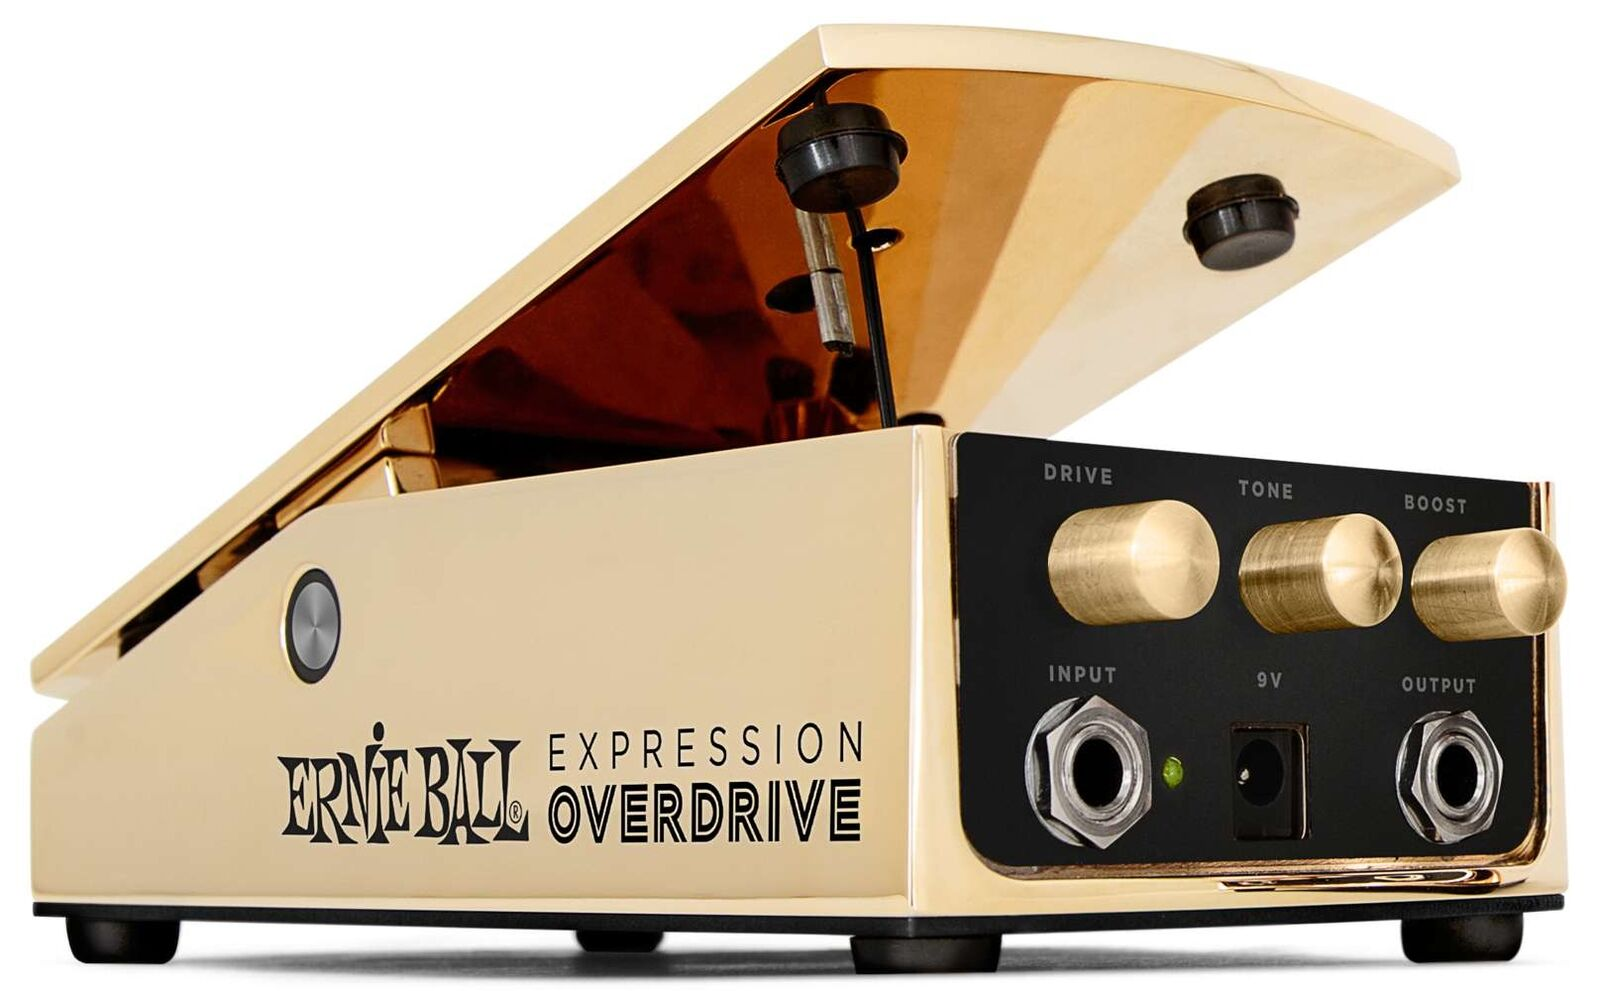 Ernie Ball Expression Overdrive - Pedale Effetto Overdrive